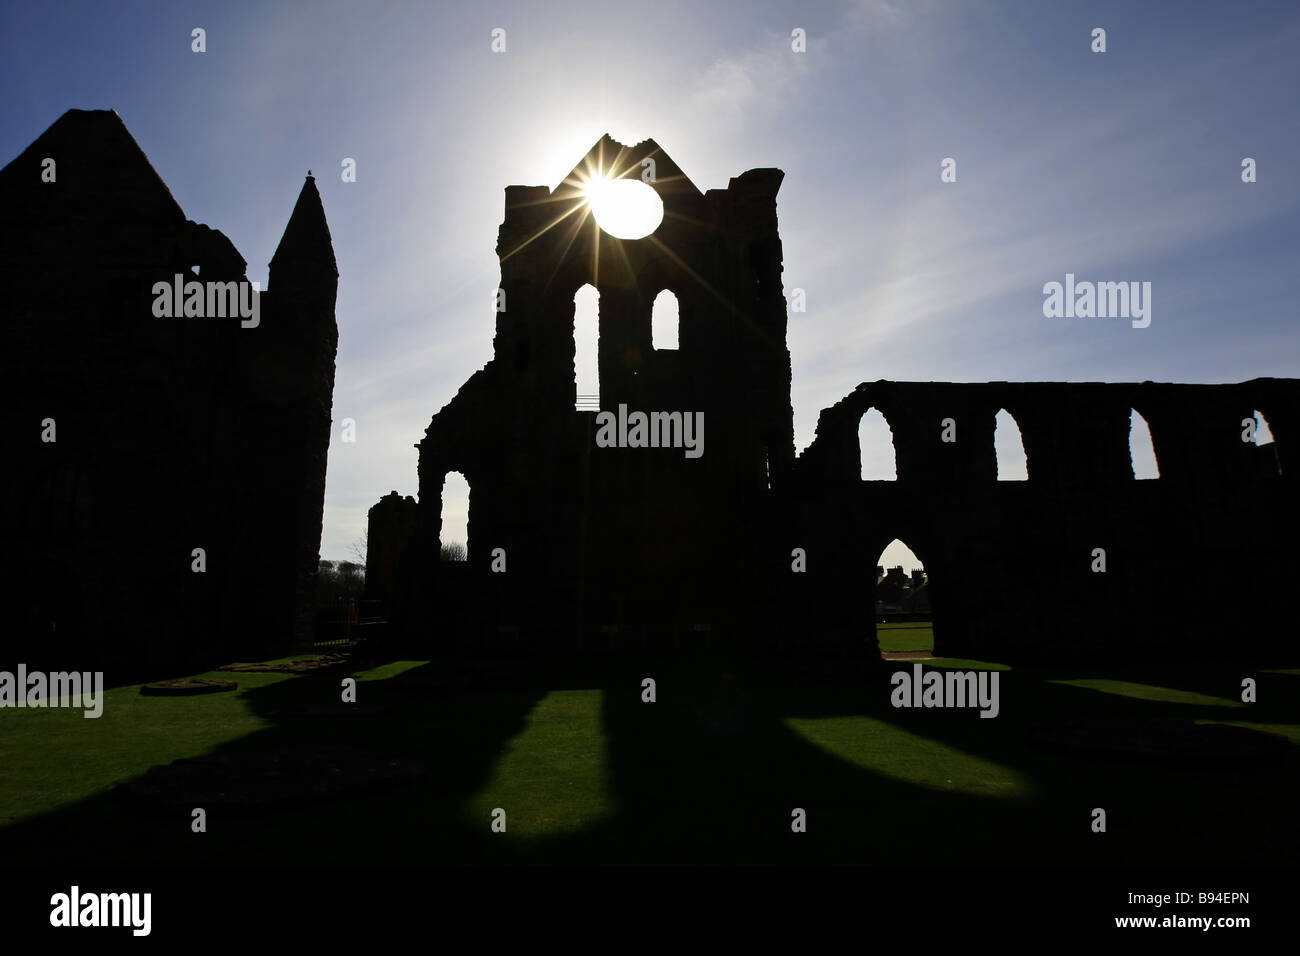 The sun shines through the rose window of the famous and historically important ruins of Arbroath Abbey in Scotland, - Stock Image